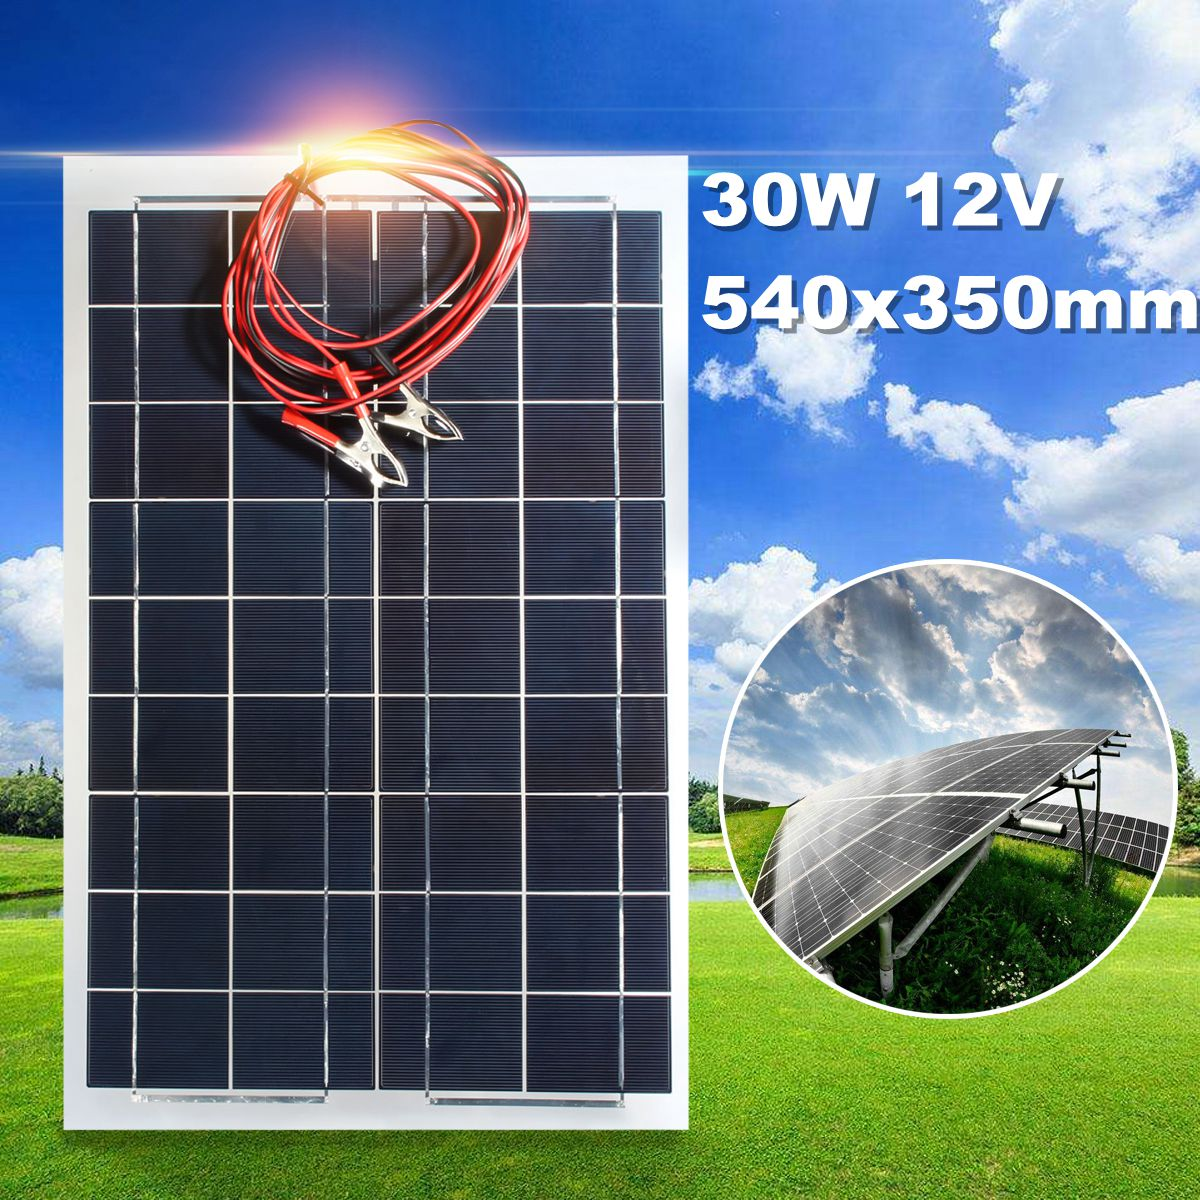 Becornce 30W 12V Semi Flexible Solar Panel Battery Charger + Cable For RV Boat Motorhome for trickle battery productsBecornce 30W 12V Semi Flexible Solar Panel Battery Charger + Cable For RV Boat Motorhome for trickle battery products